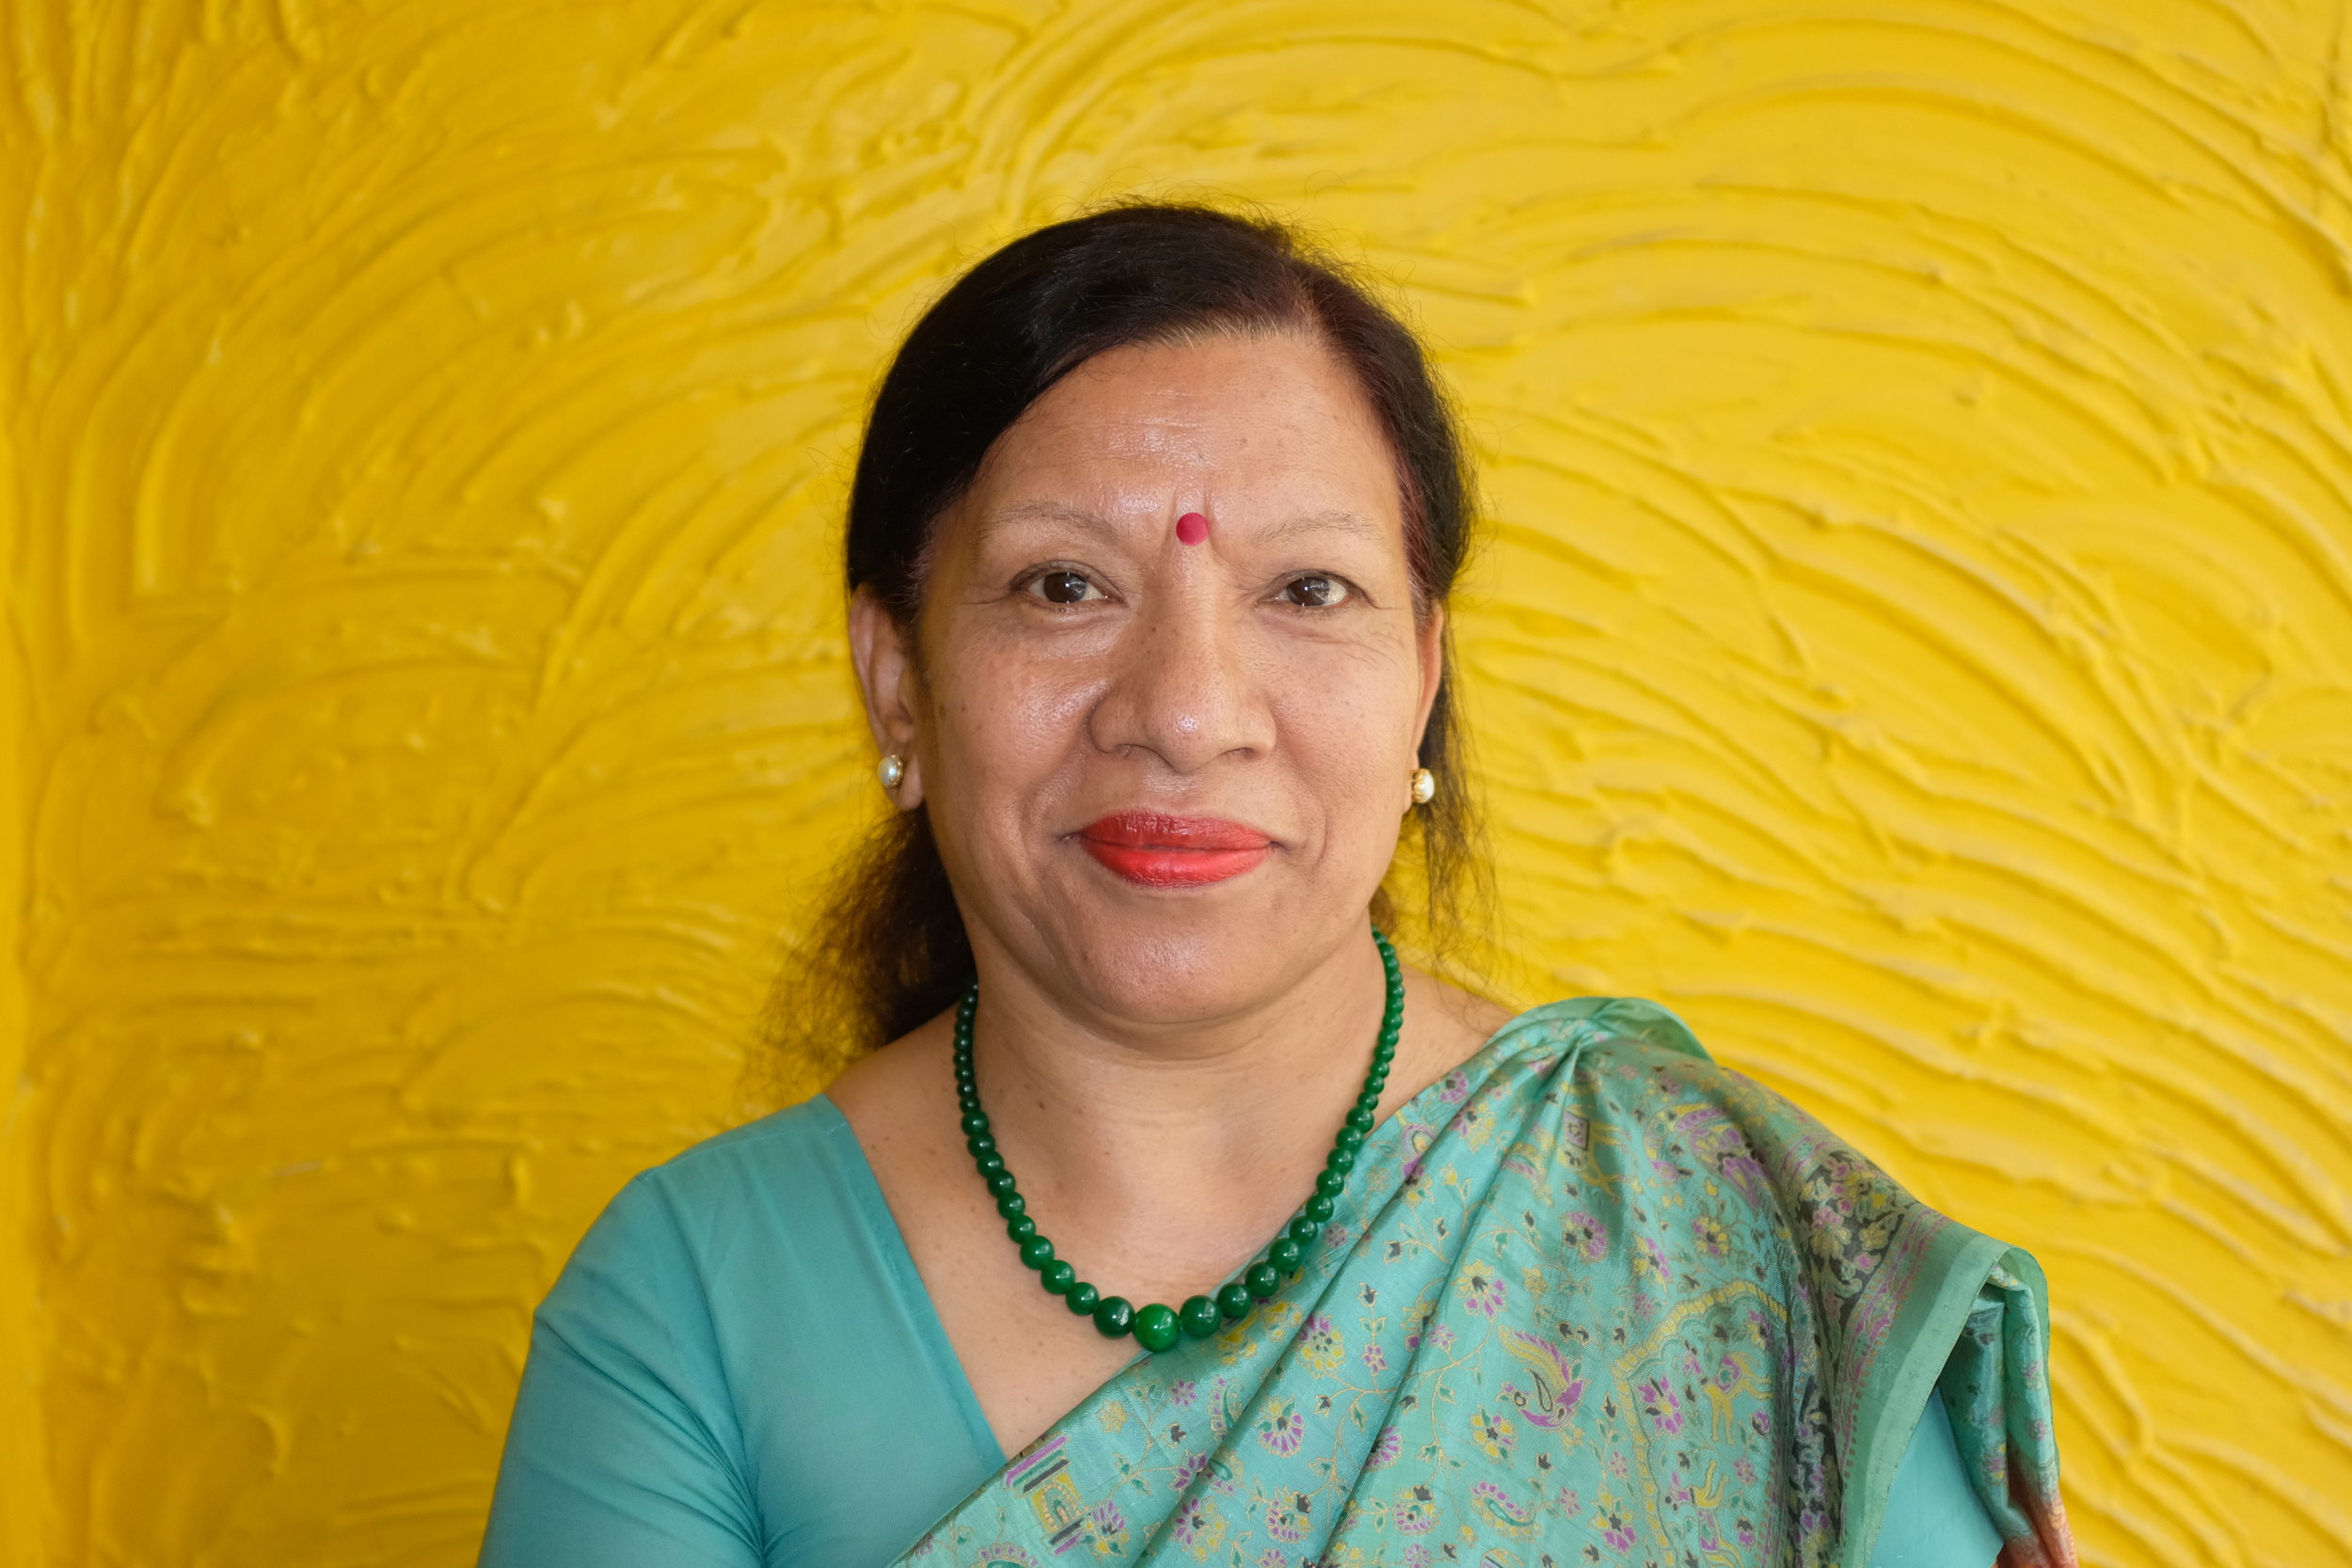 Ms. Purna Shova Chitrakaar, Vice Chair